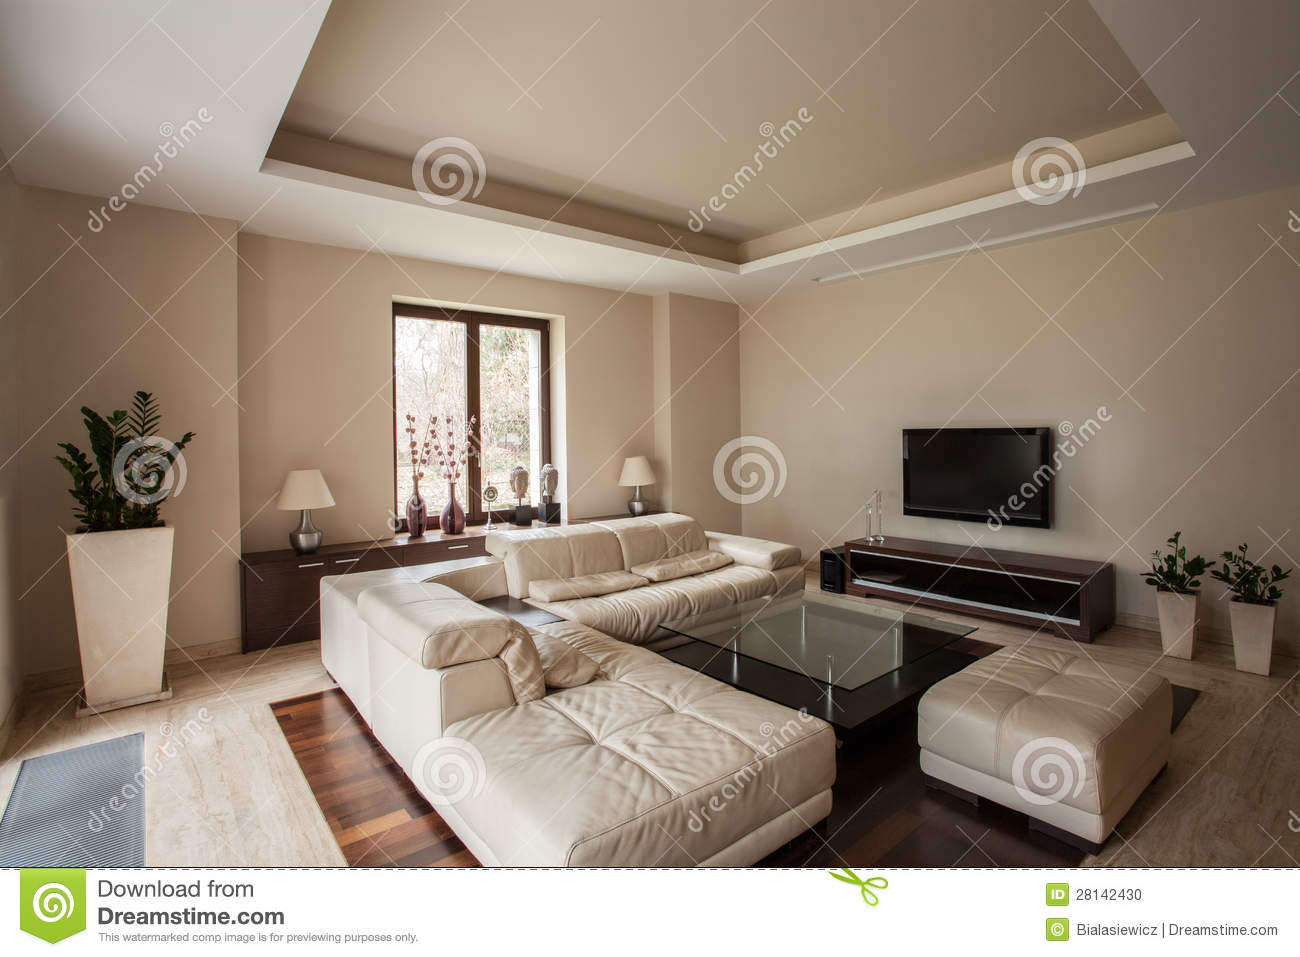 Maison de travertin salon moderne photo stock image for Photo salon moderne